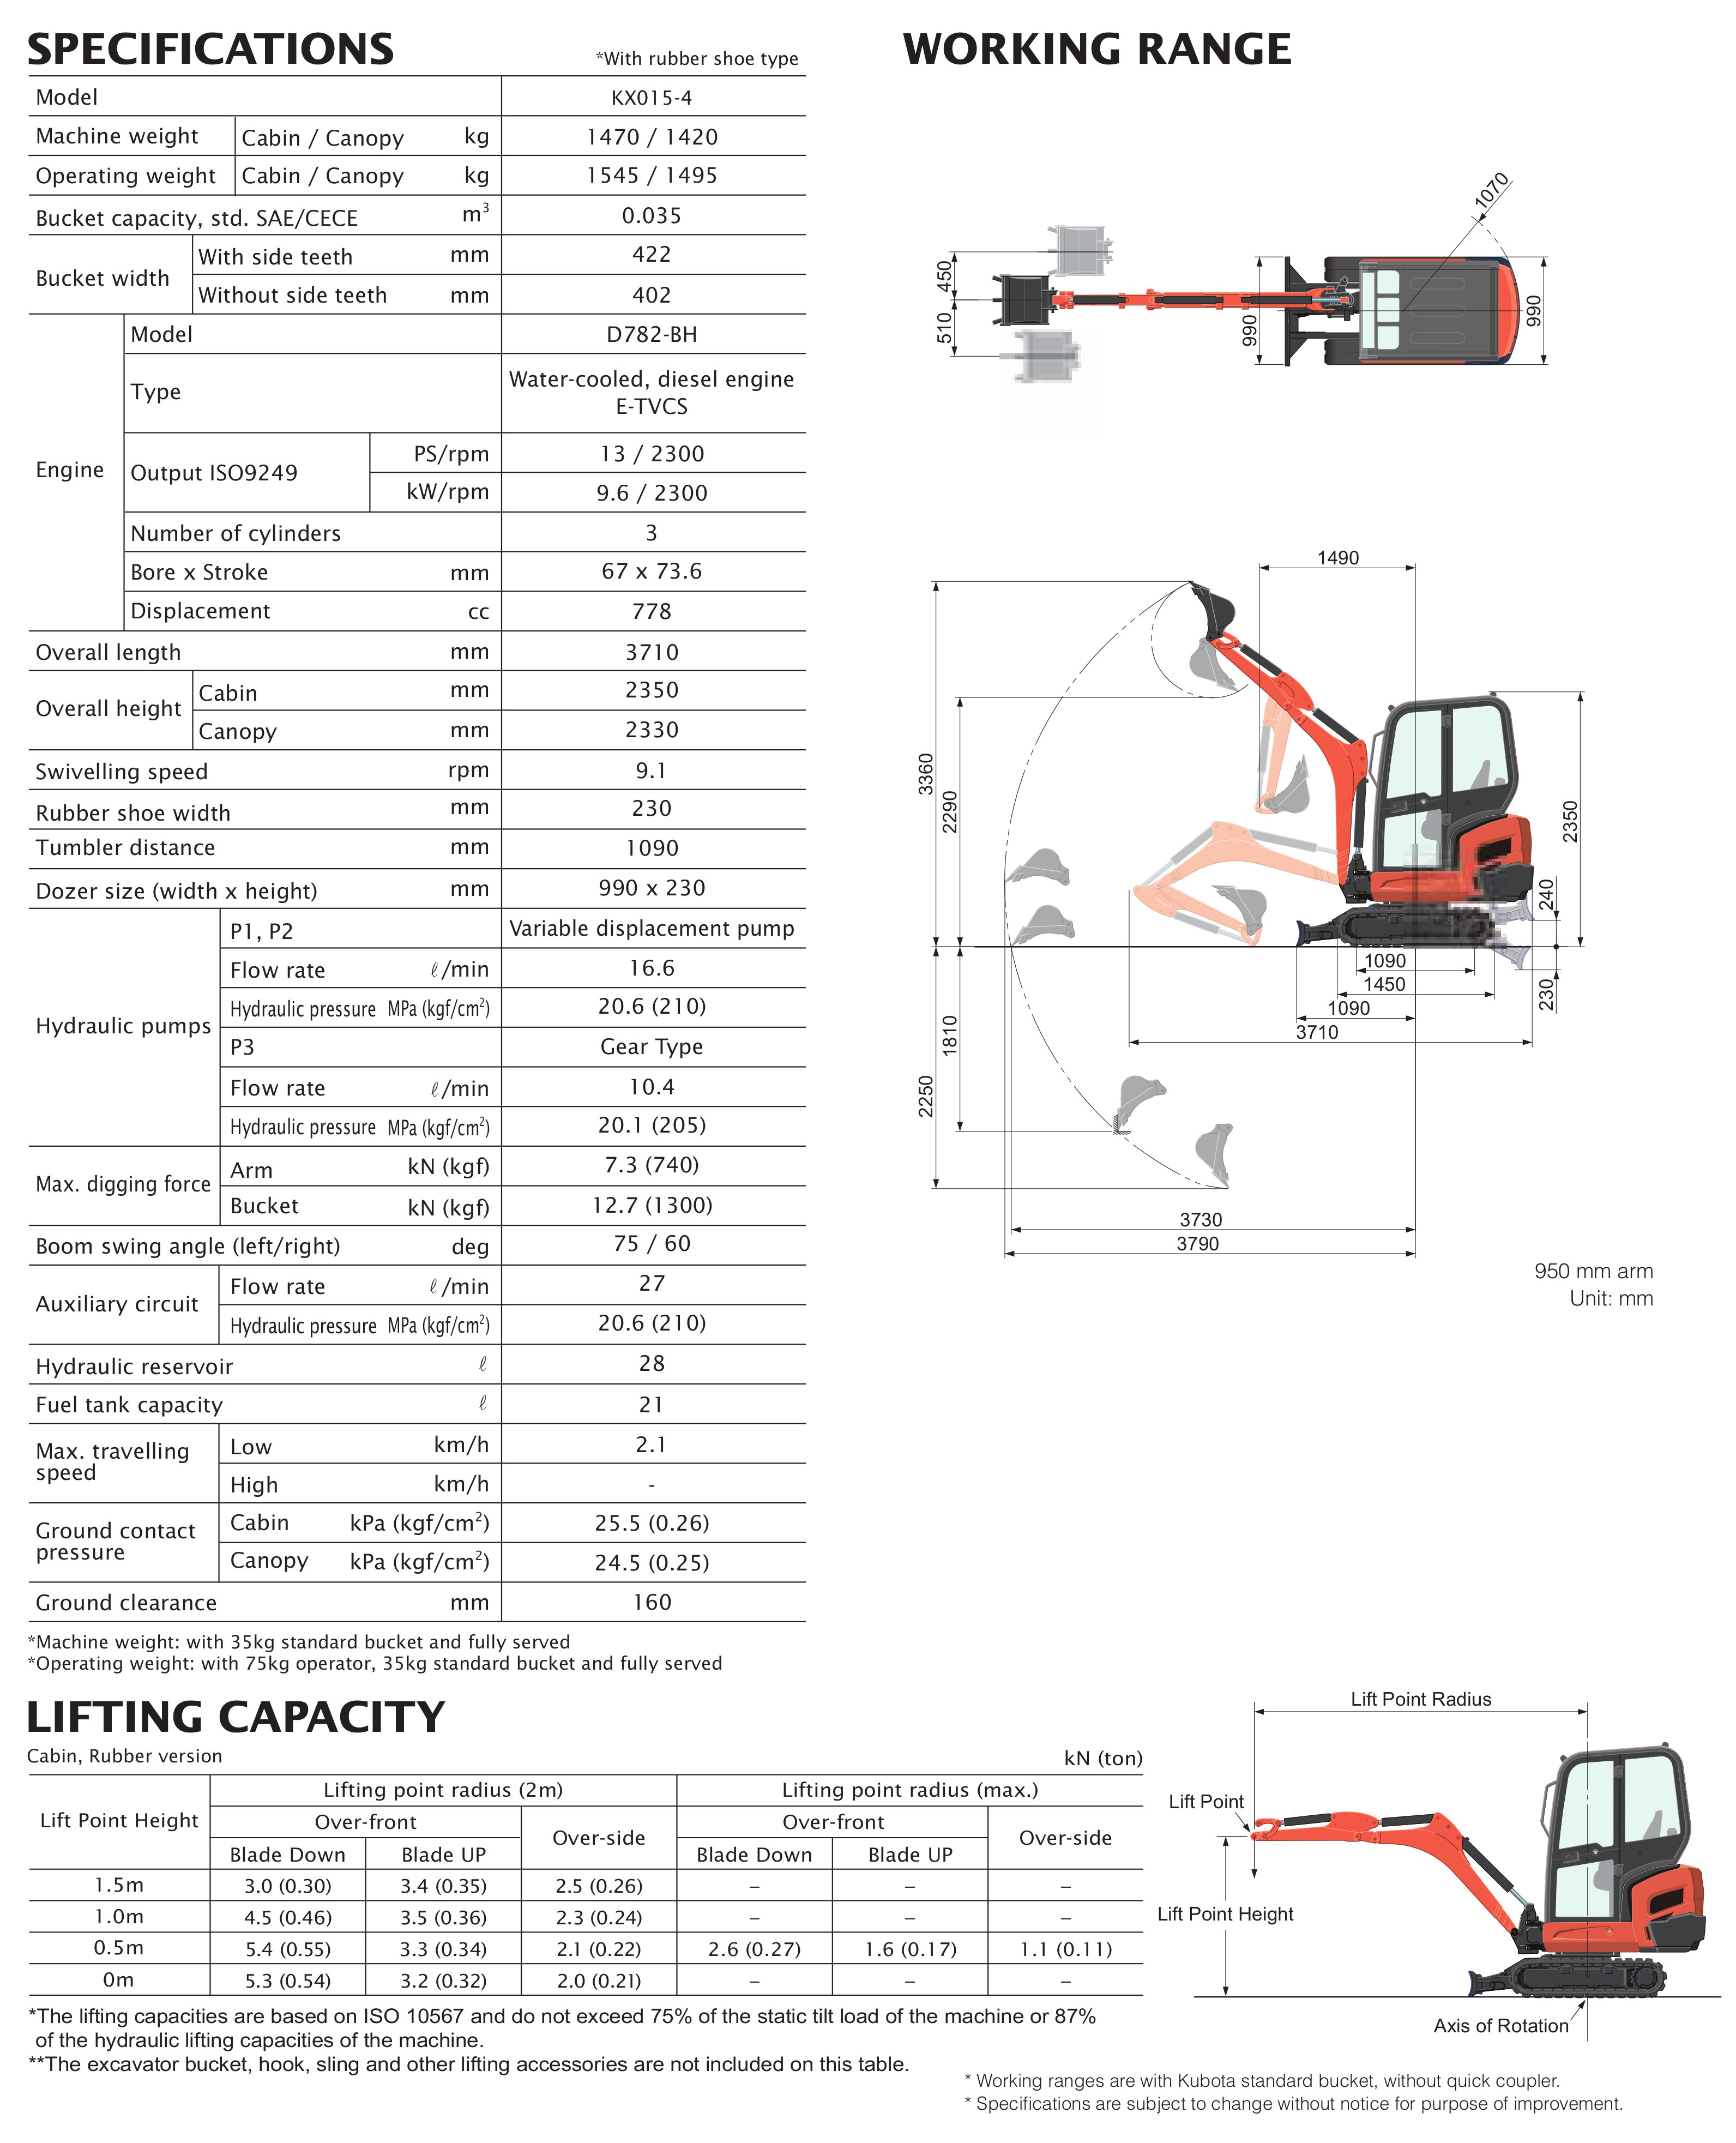 Mini Excavator / Digger 1.5 Tonne Specifications